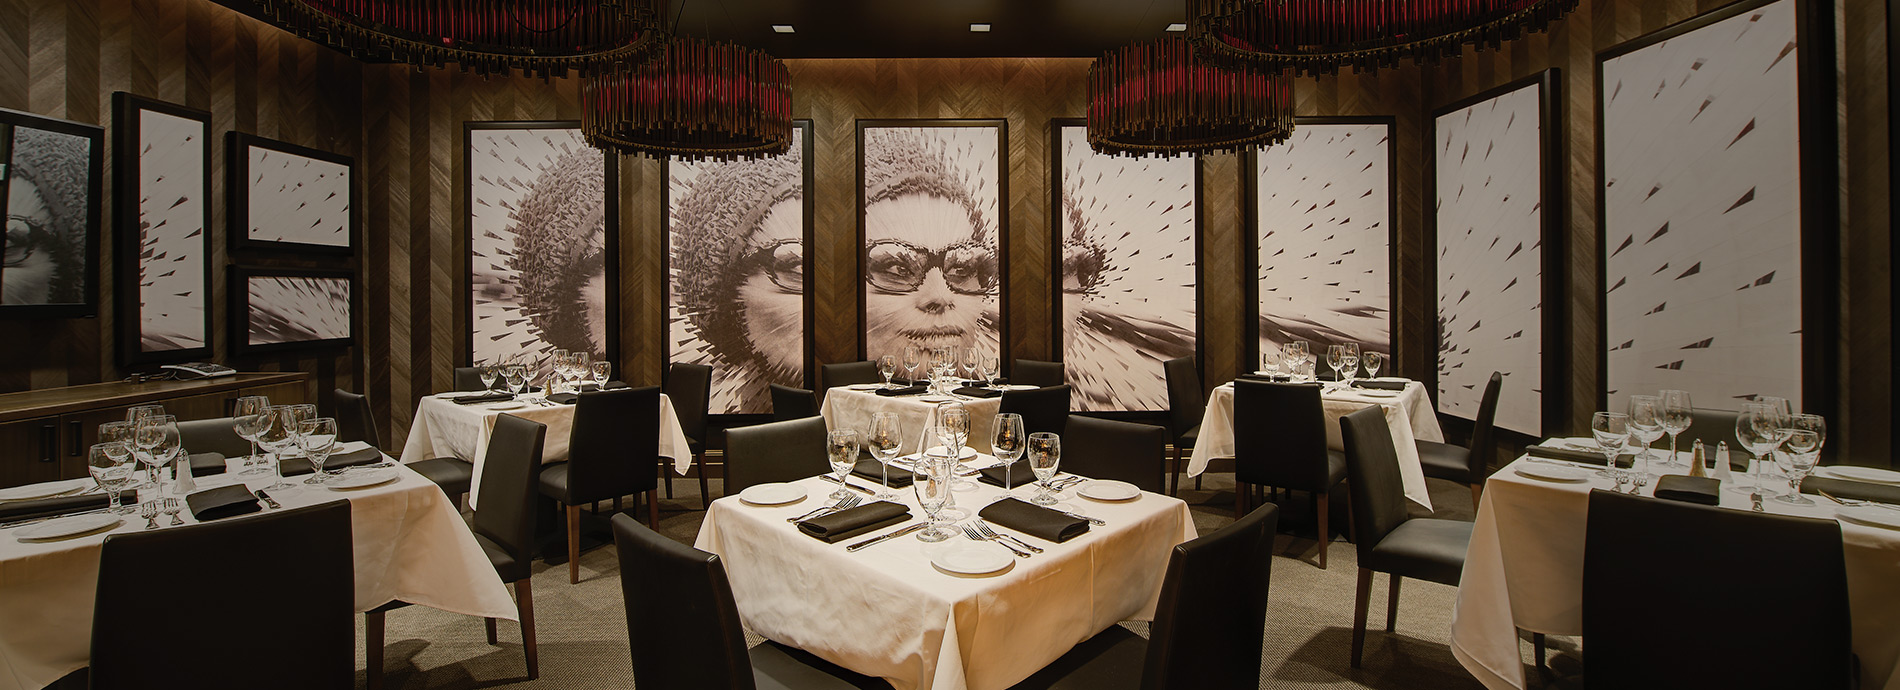 Interior of Ocean Prime private dining space